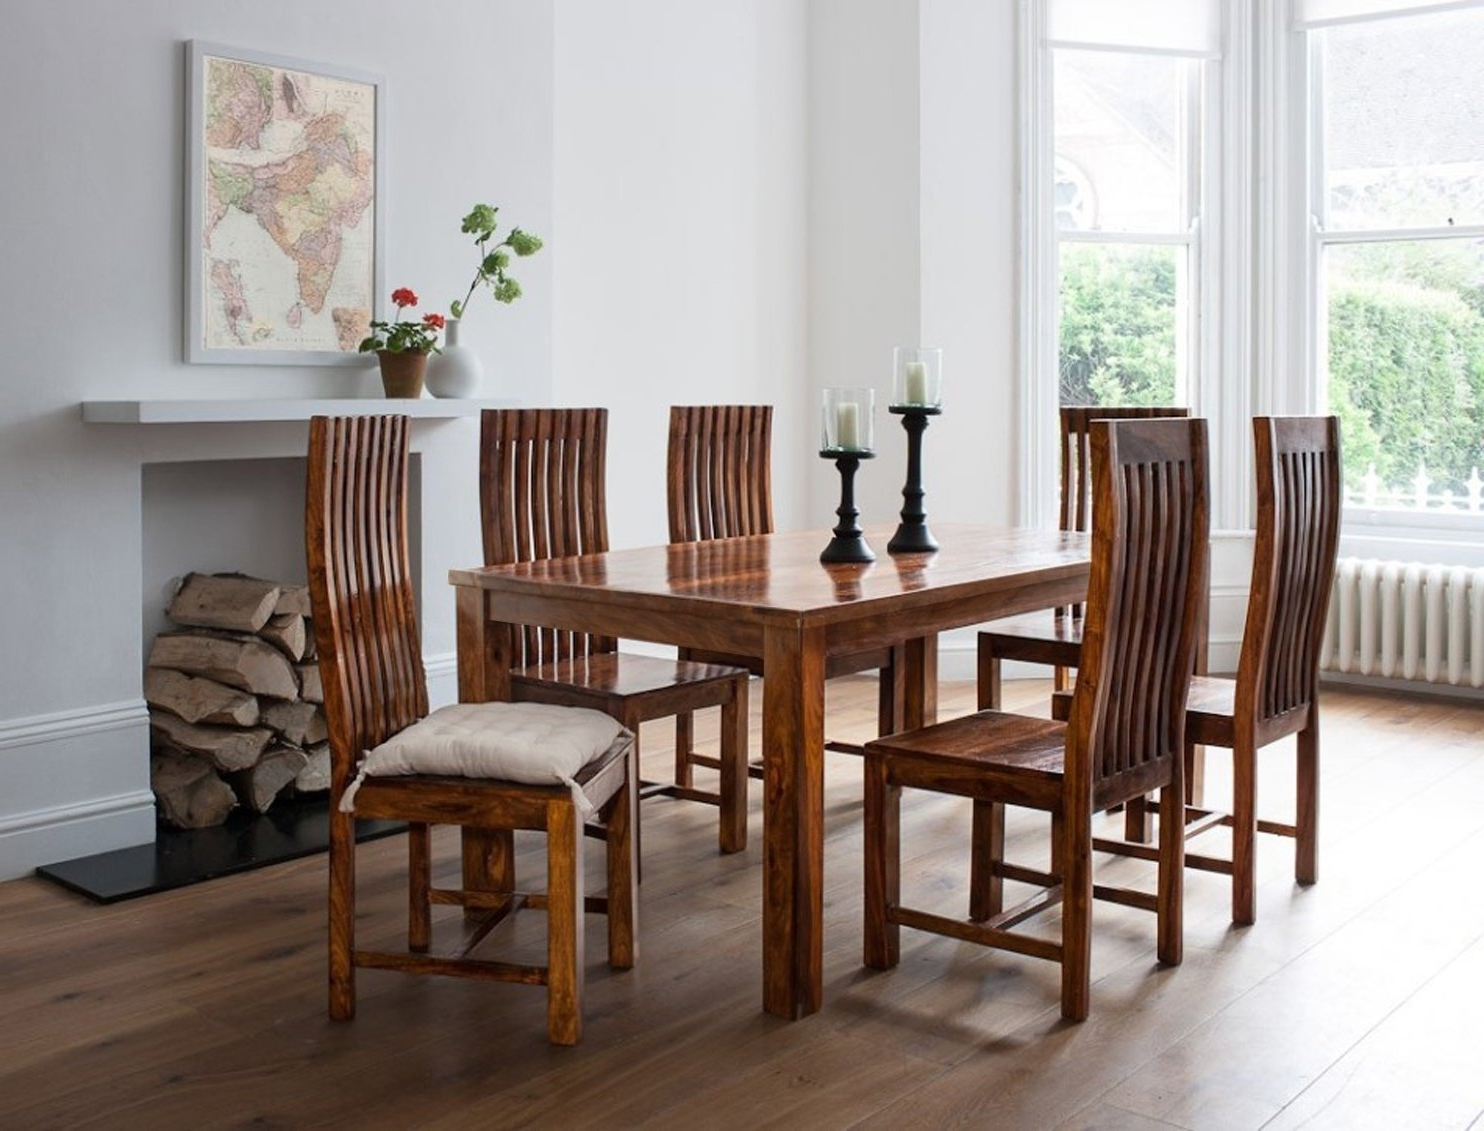 Most Recently Released 6 Seater Dining Tables Regarding Lifeestyle Handcrafted Sheesham Wood 6 Seater Dining Set (Honey (View 19 of 25)